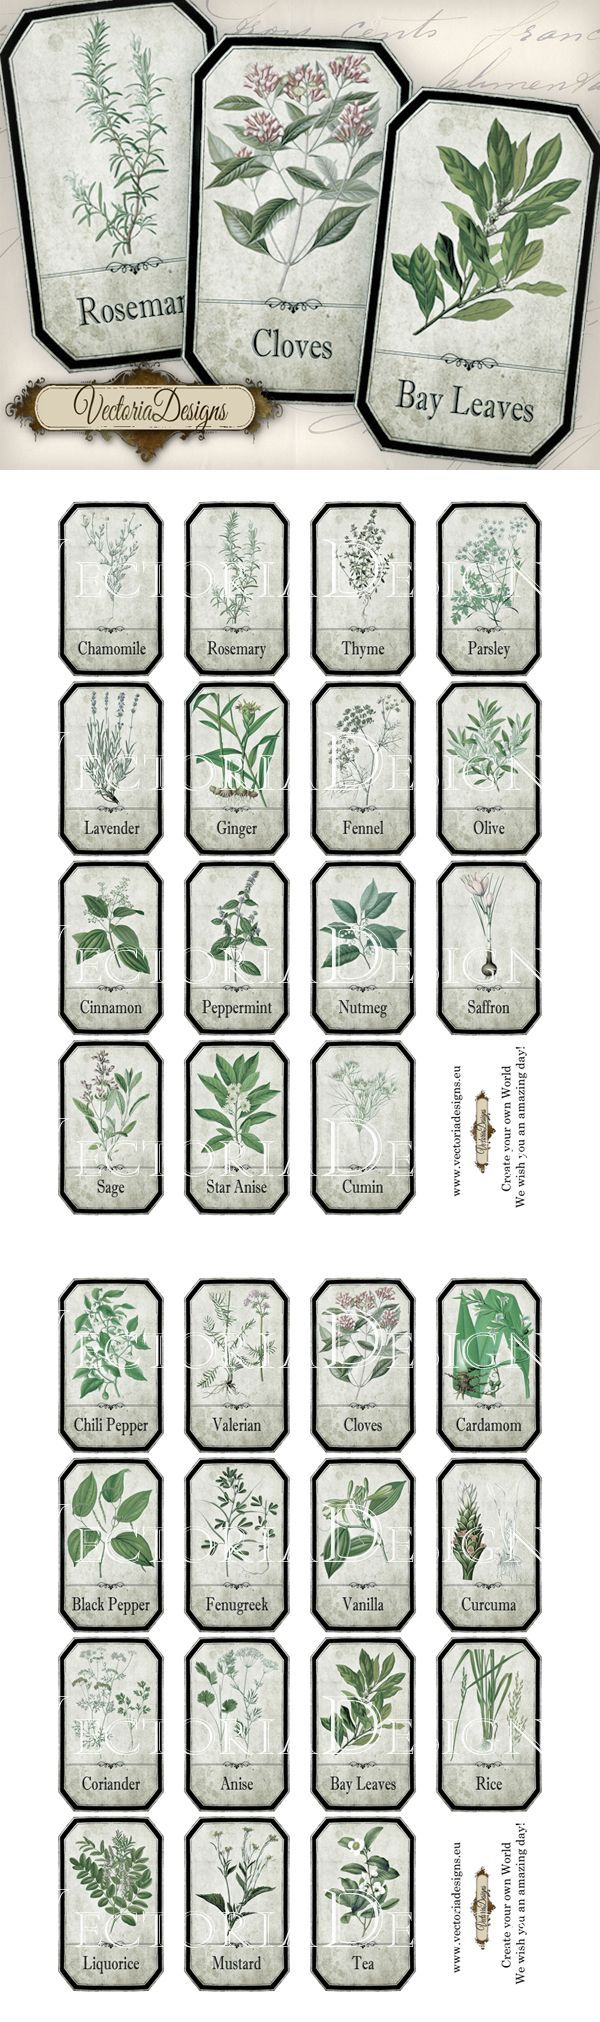 Printable Shabby Herbal Labels by VectoriaDesigns.deviantart.com on @deviantART | herbology, herbalism, healing plants, herbal medicine Más